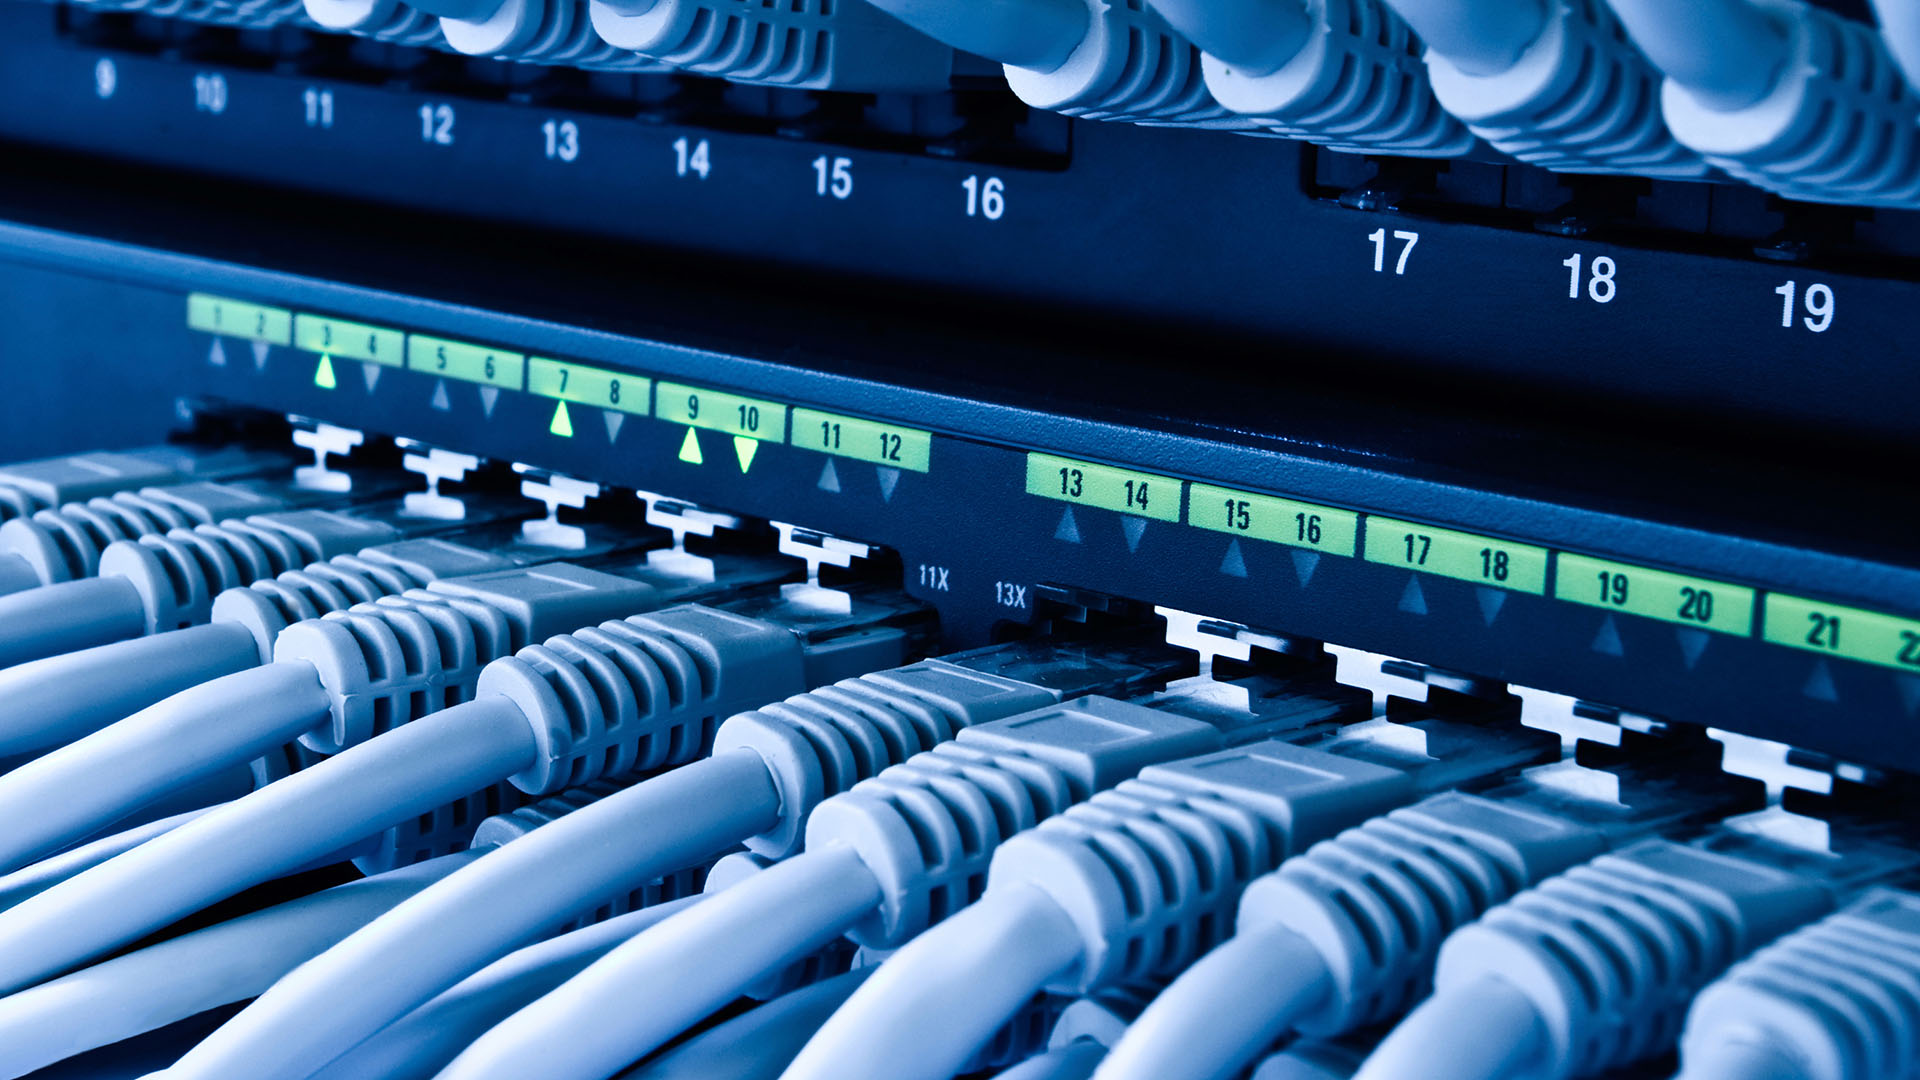 Lake City Florida High Quality Voice & Data Network Cabling Contractor